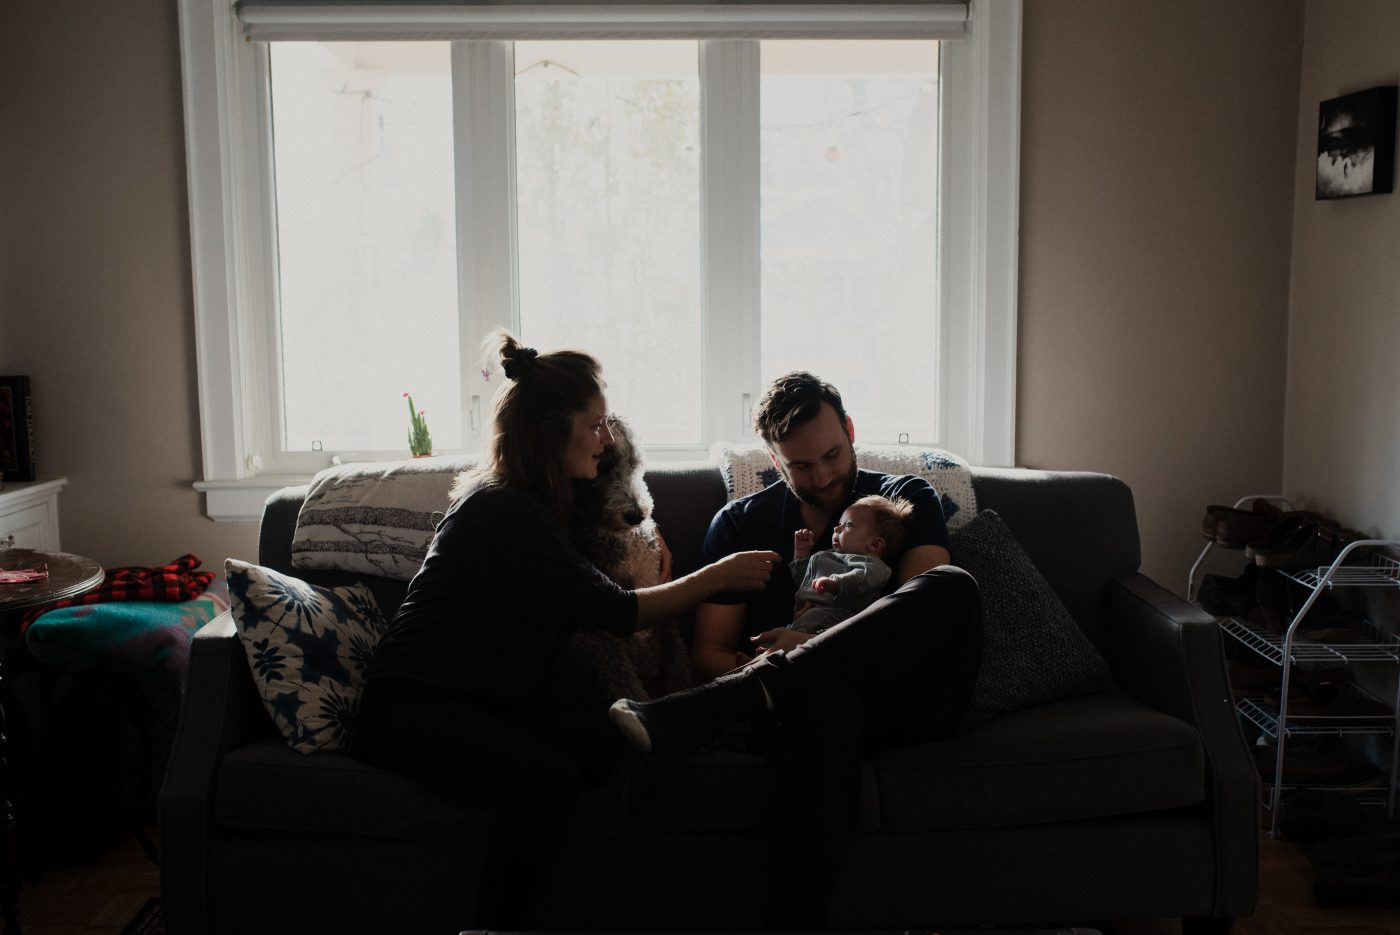 newborn family session, toronto. Family on couch